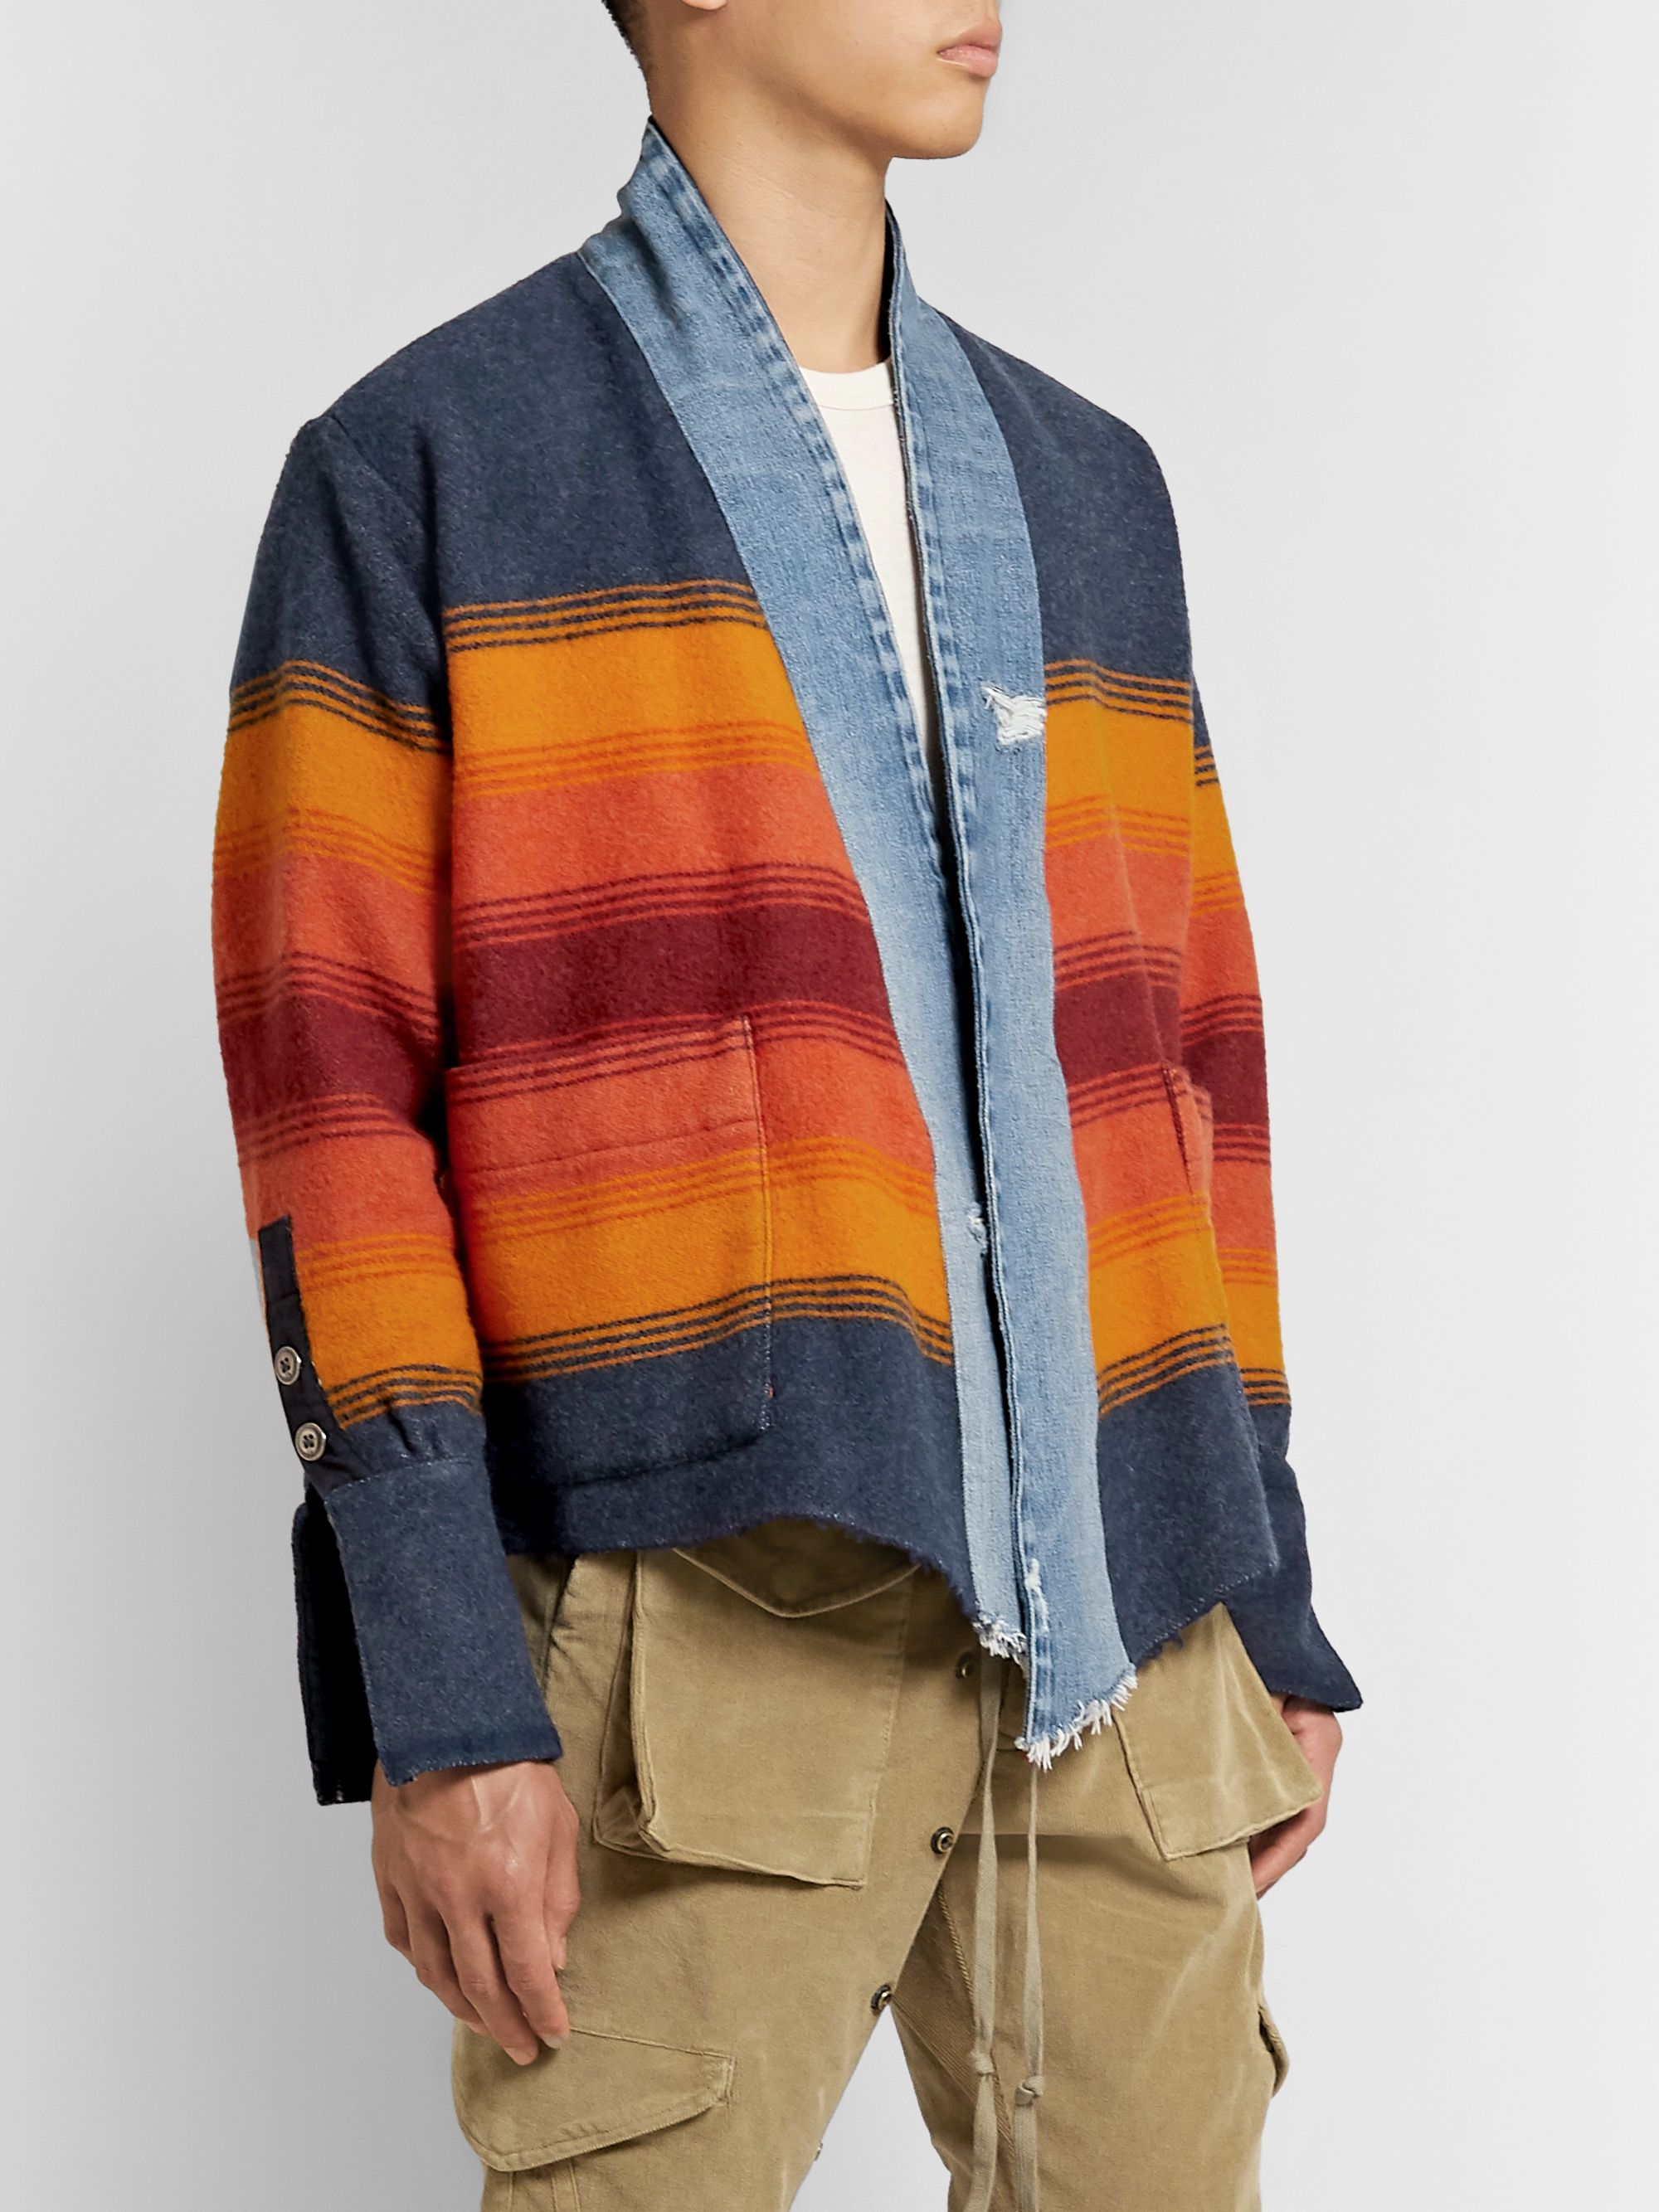 Greg Lauren Boxy Kimono Studio Distressed Denim-Trimmed Striped Wool-Blend Jacket